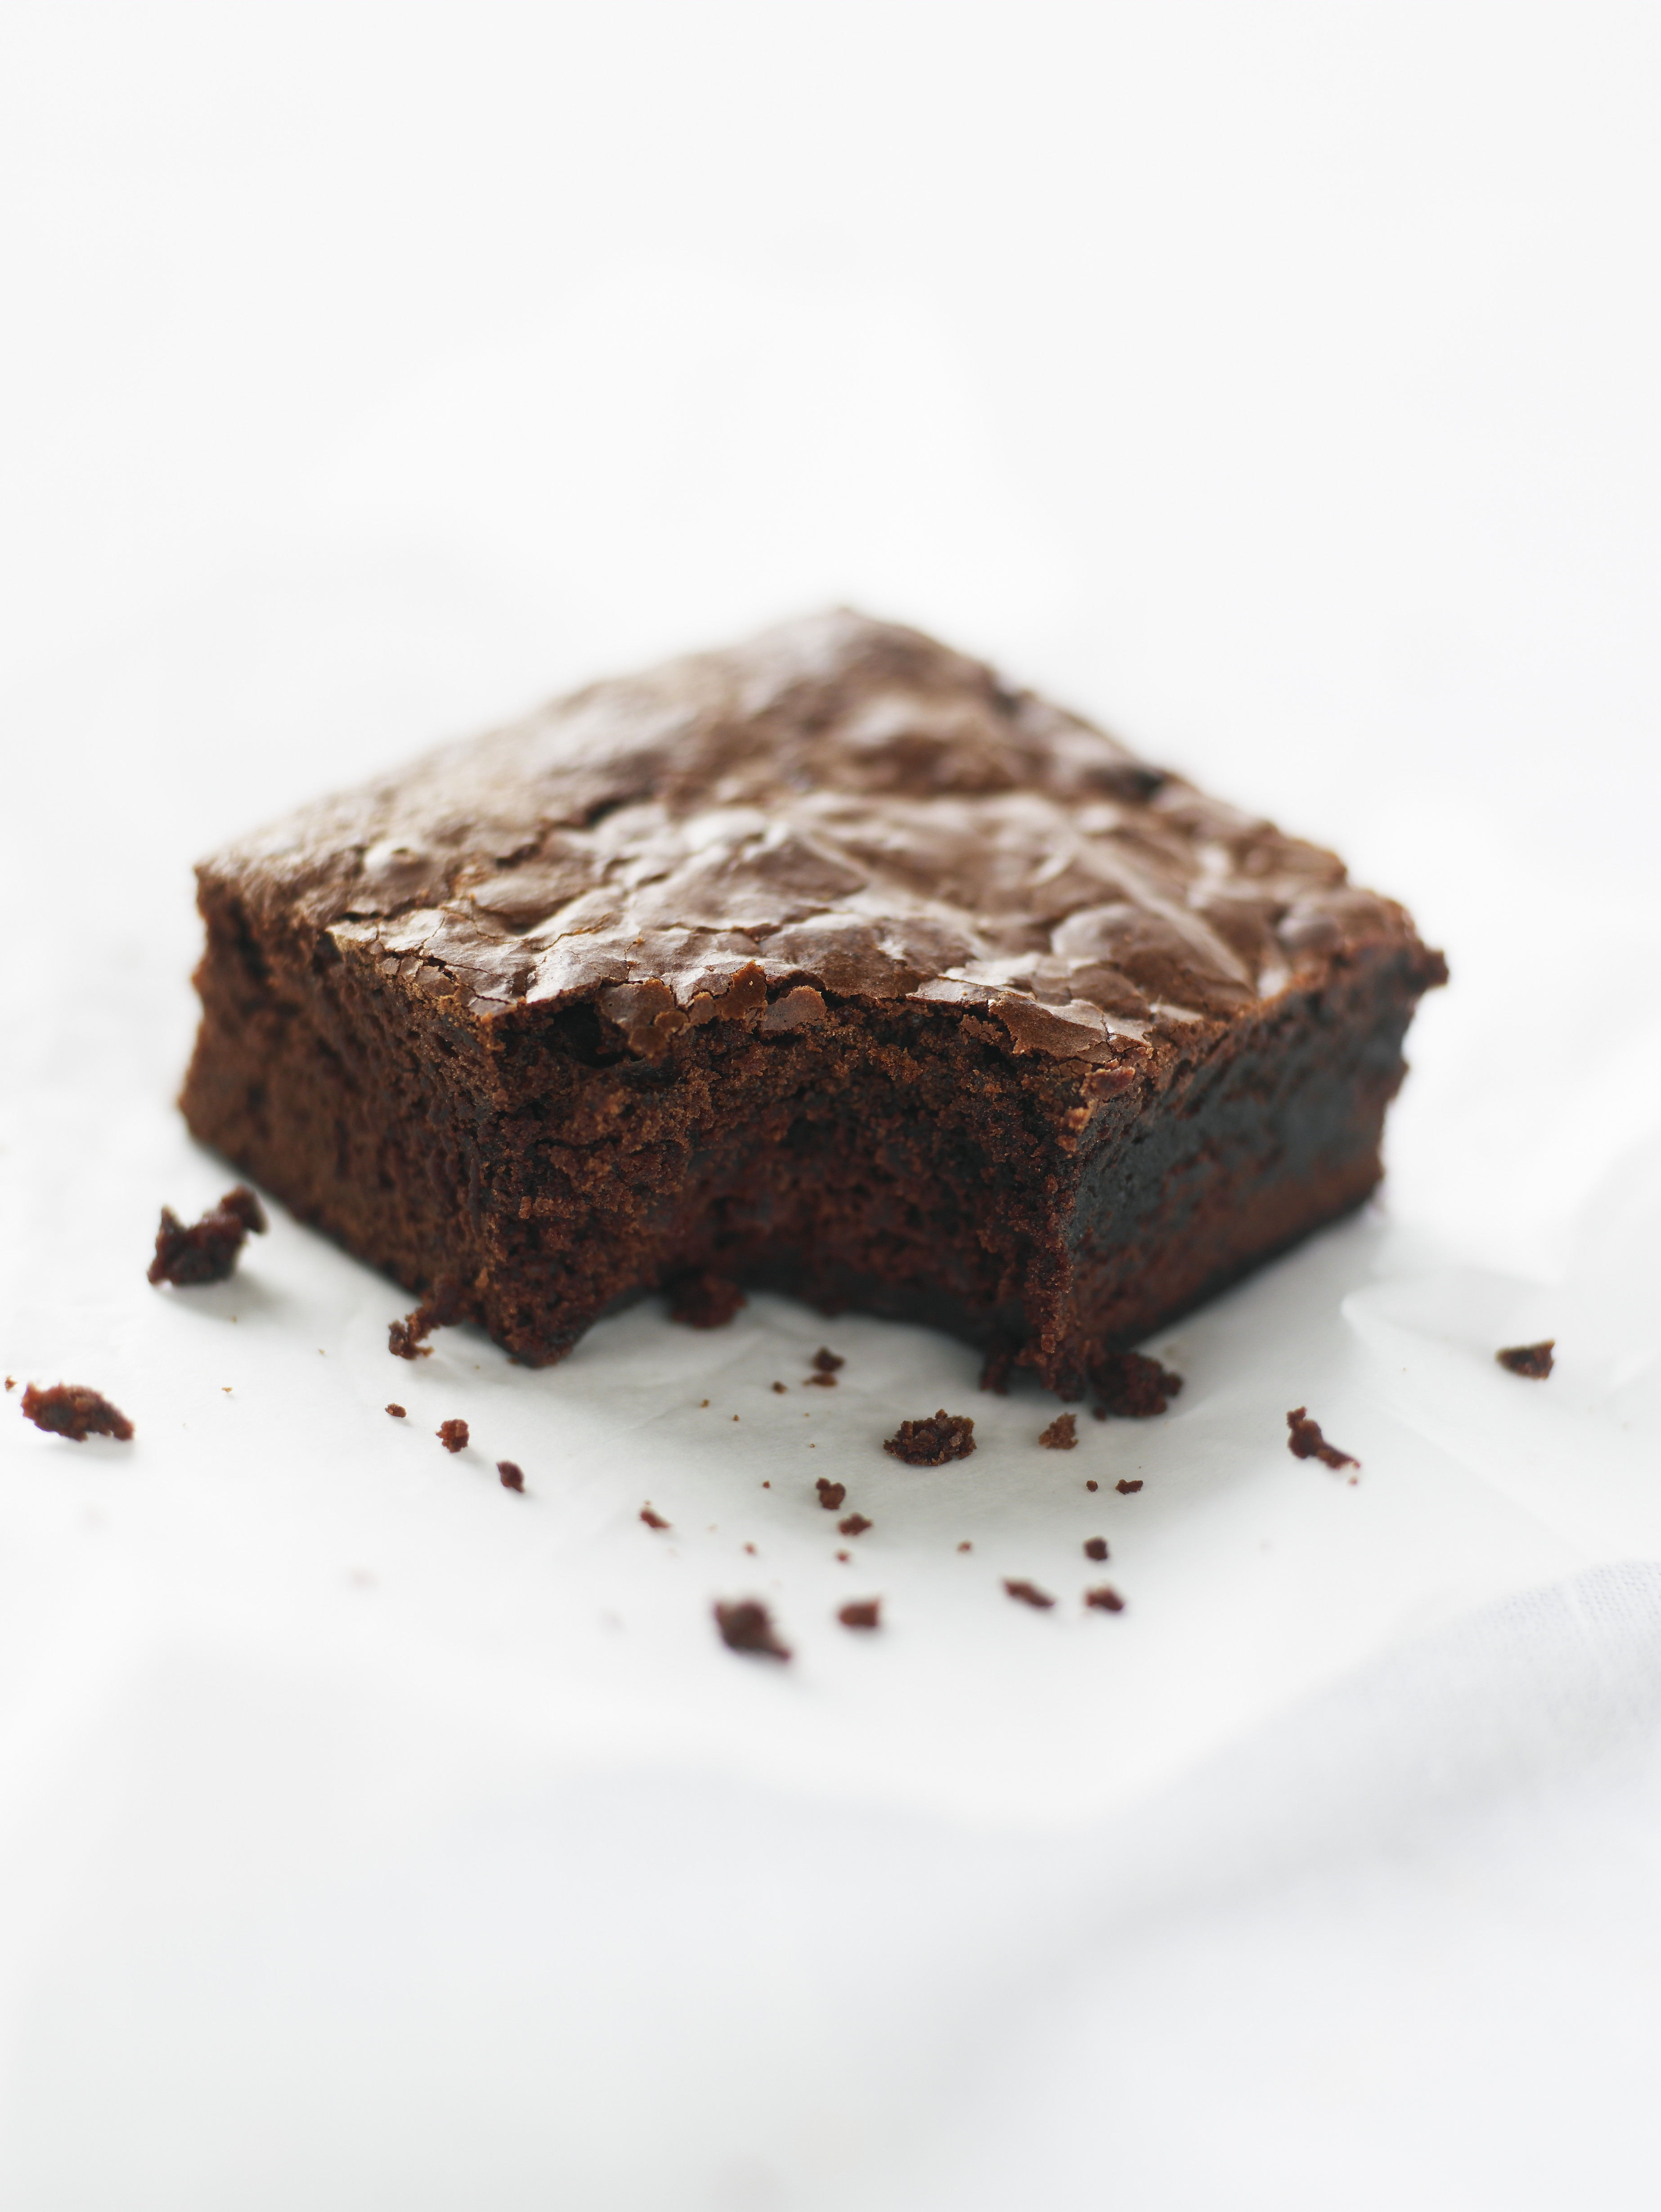 Double-chocolate brownie missing one bite